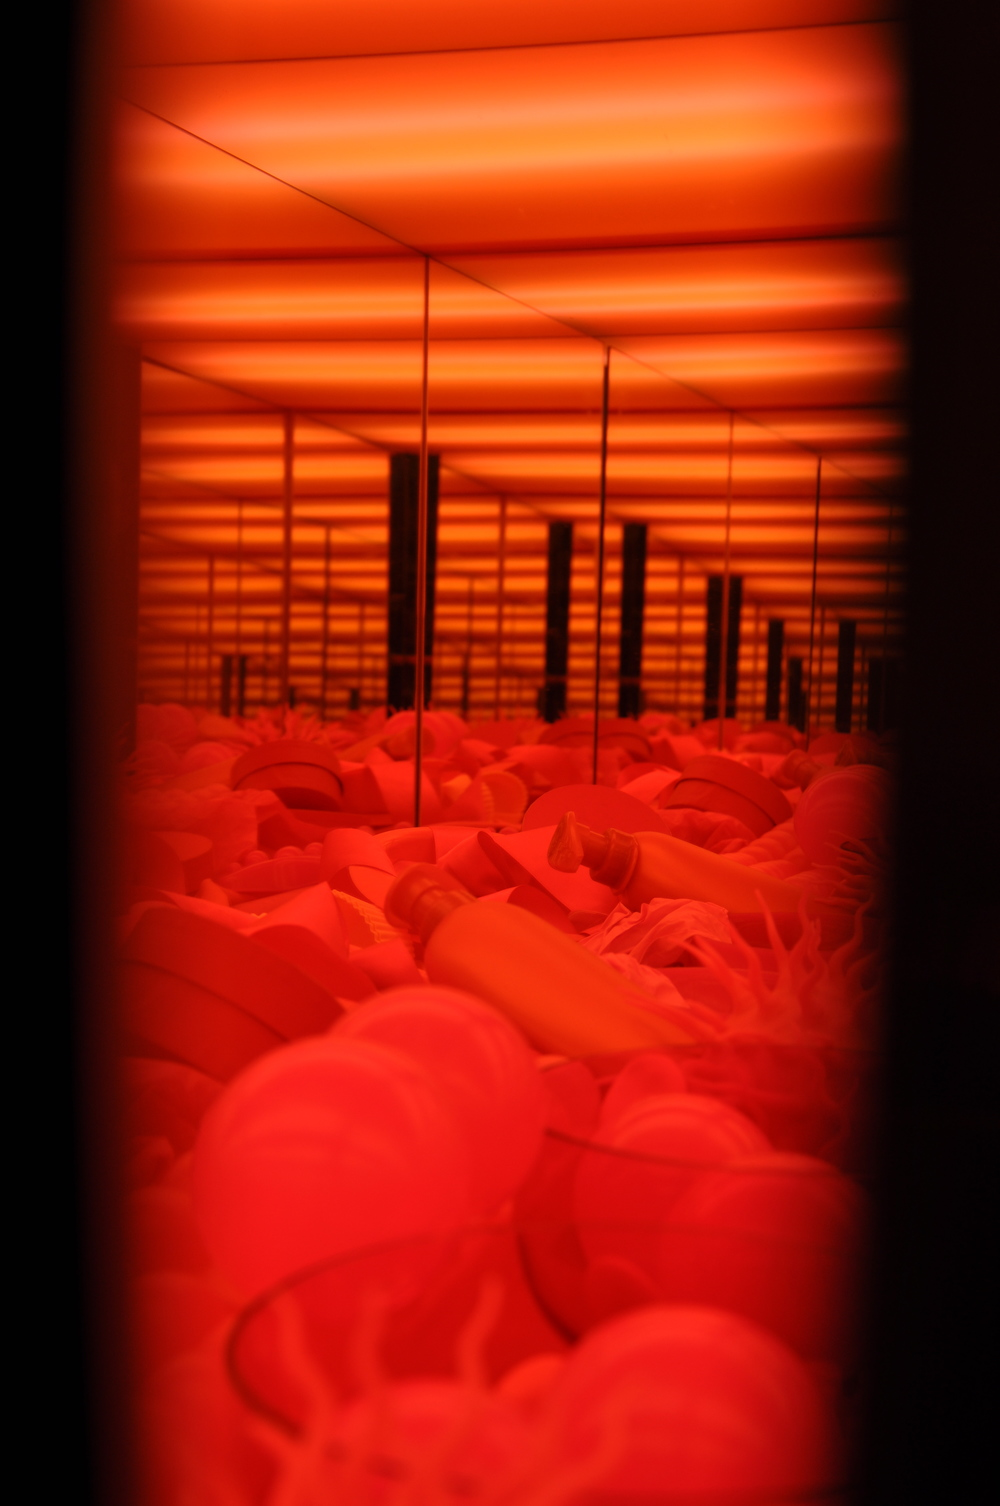 7. Red Chamber (Internal View), Mixed Media Installation, 2011 -2.jpg